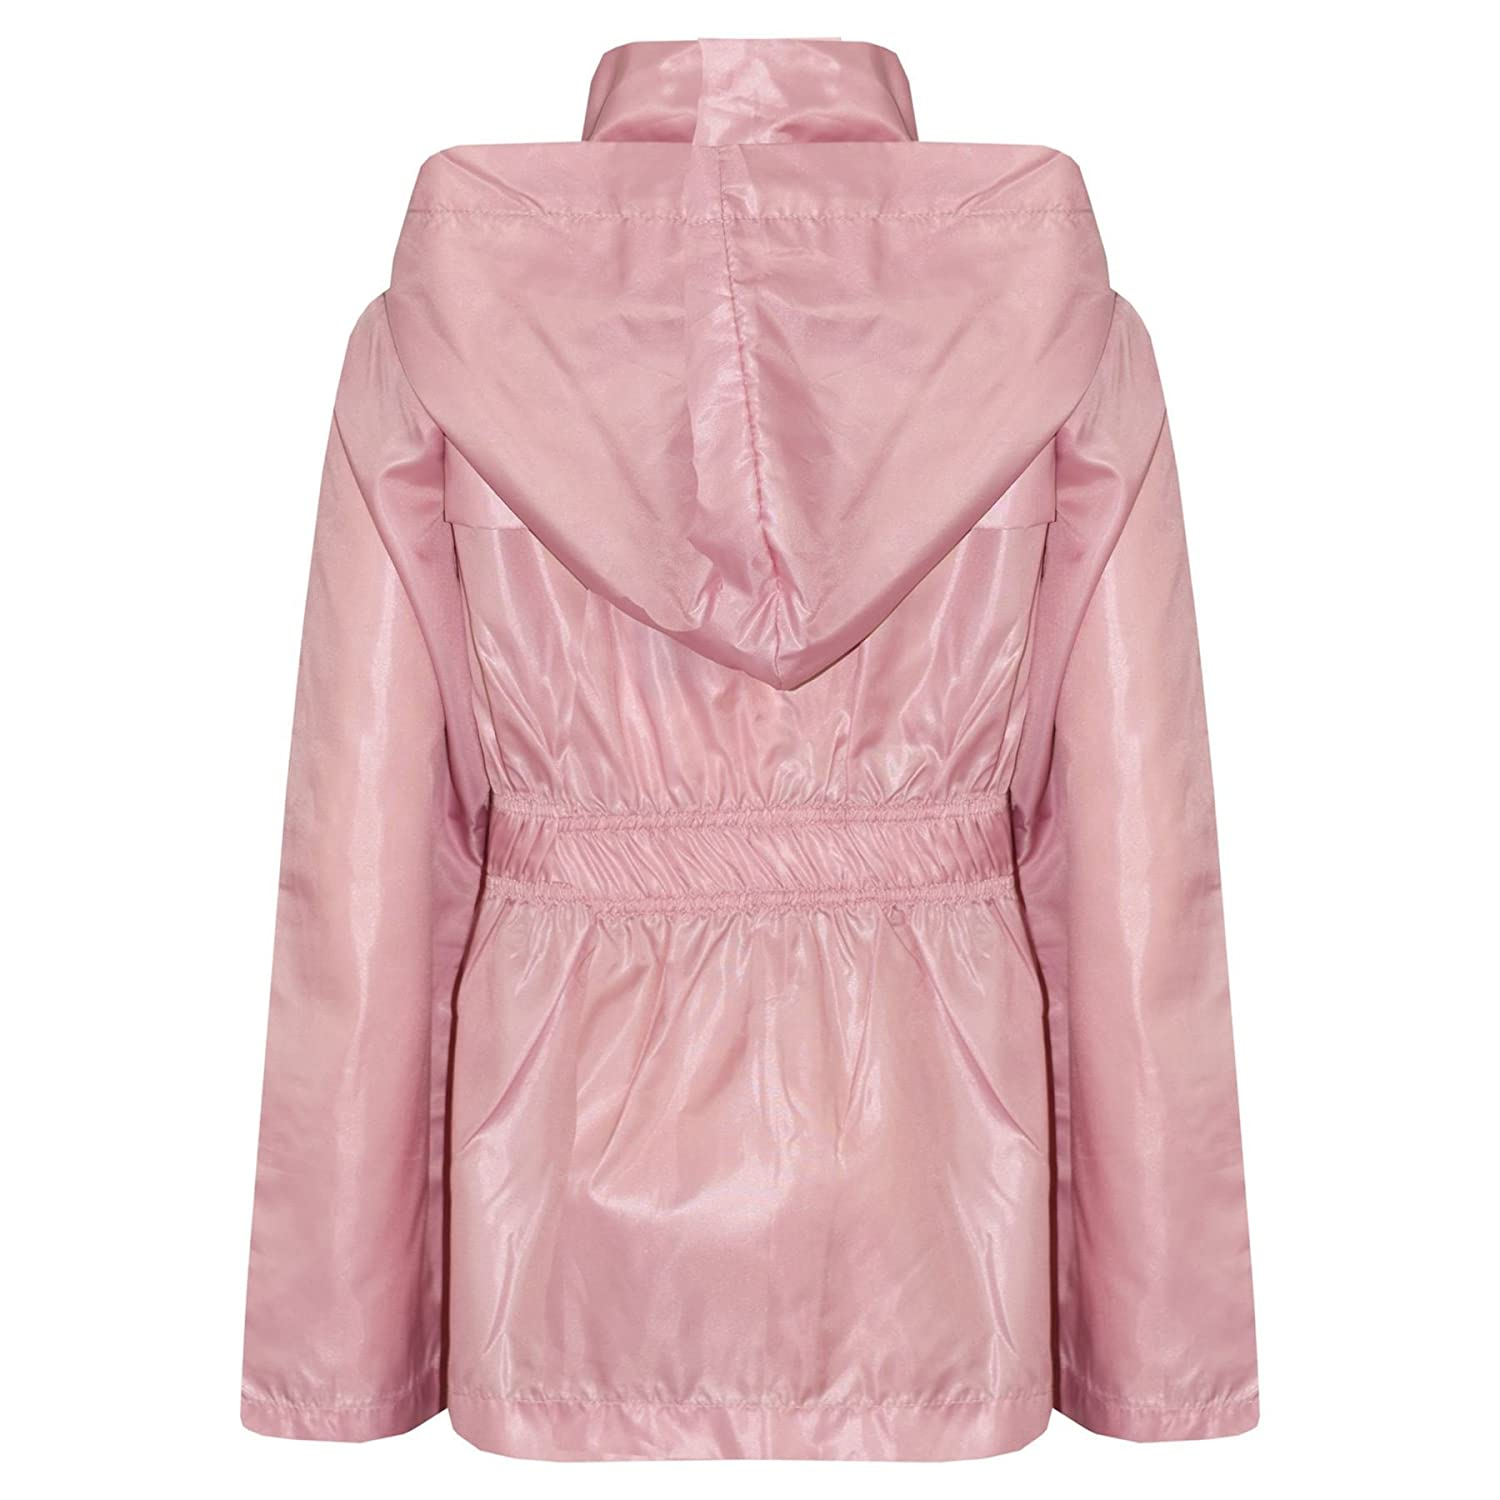 Laus Girls Waterproof Jacket Hooded Pink Rain Mac Coats with Backpack Position